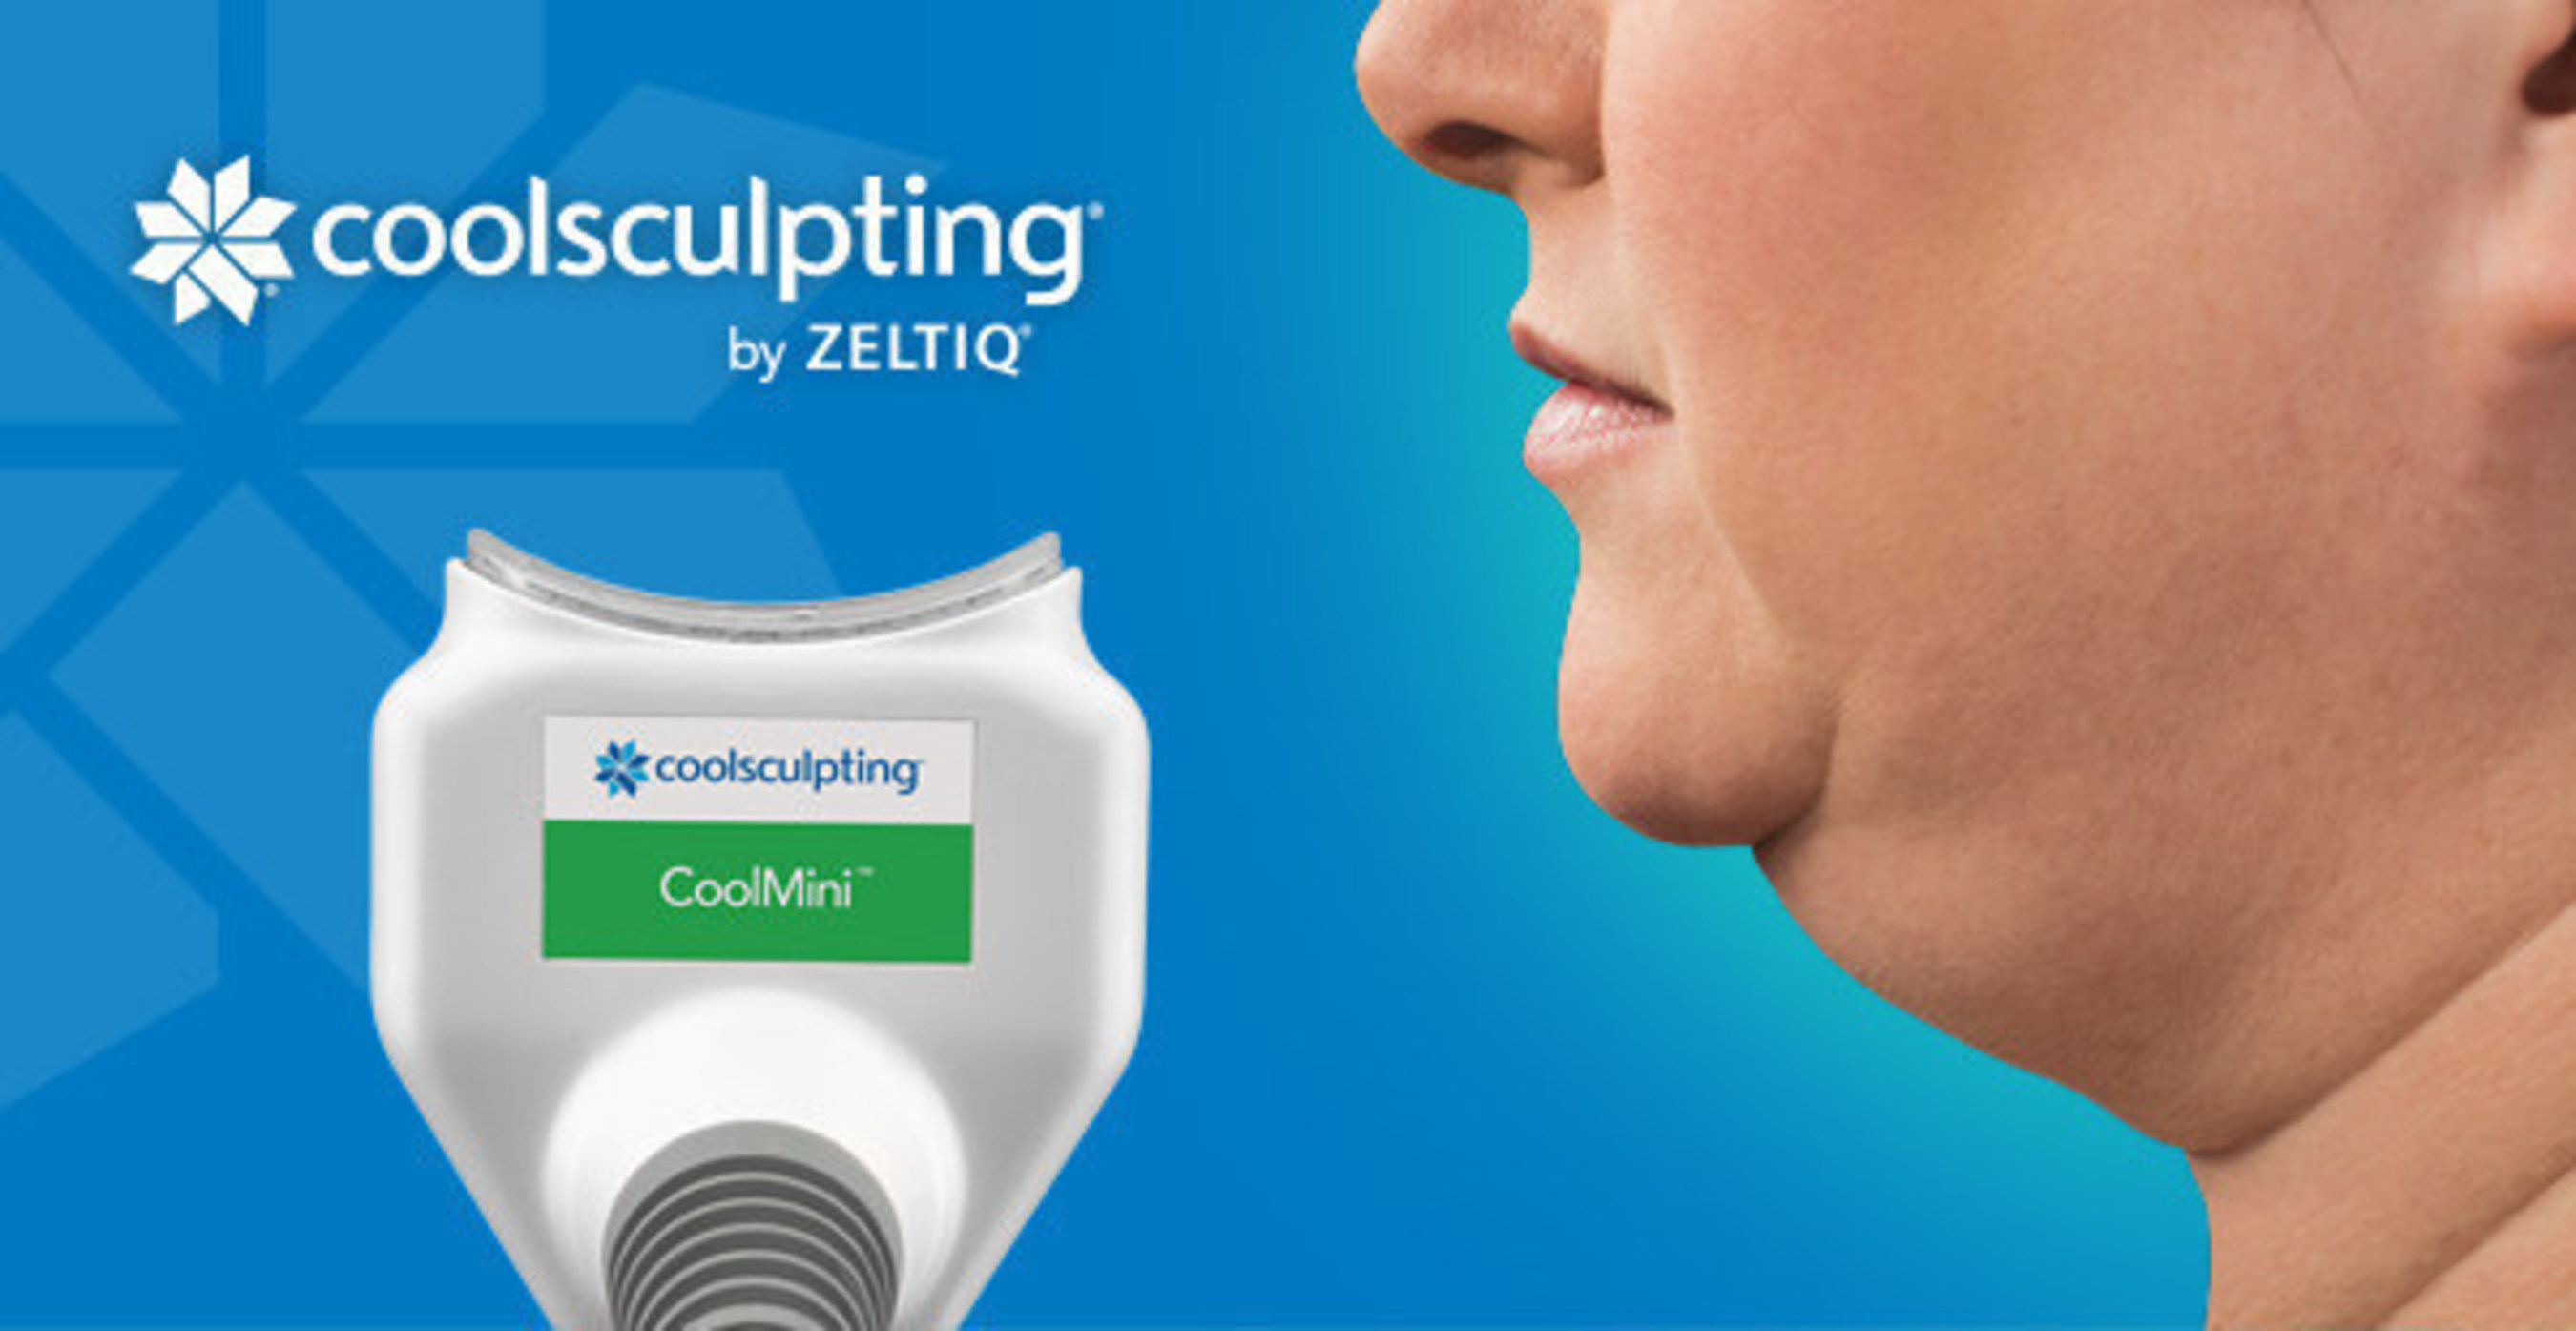 Introducing the CoolMini Applicator for Coolsculpting Treatment to Trifecta Med Spa in New York